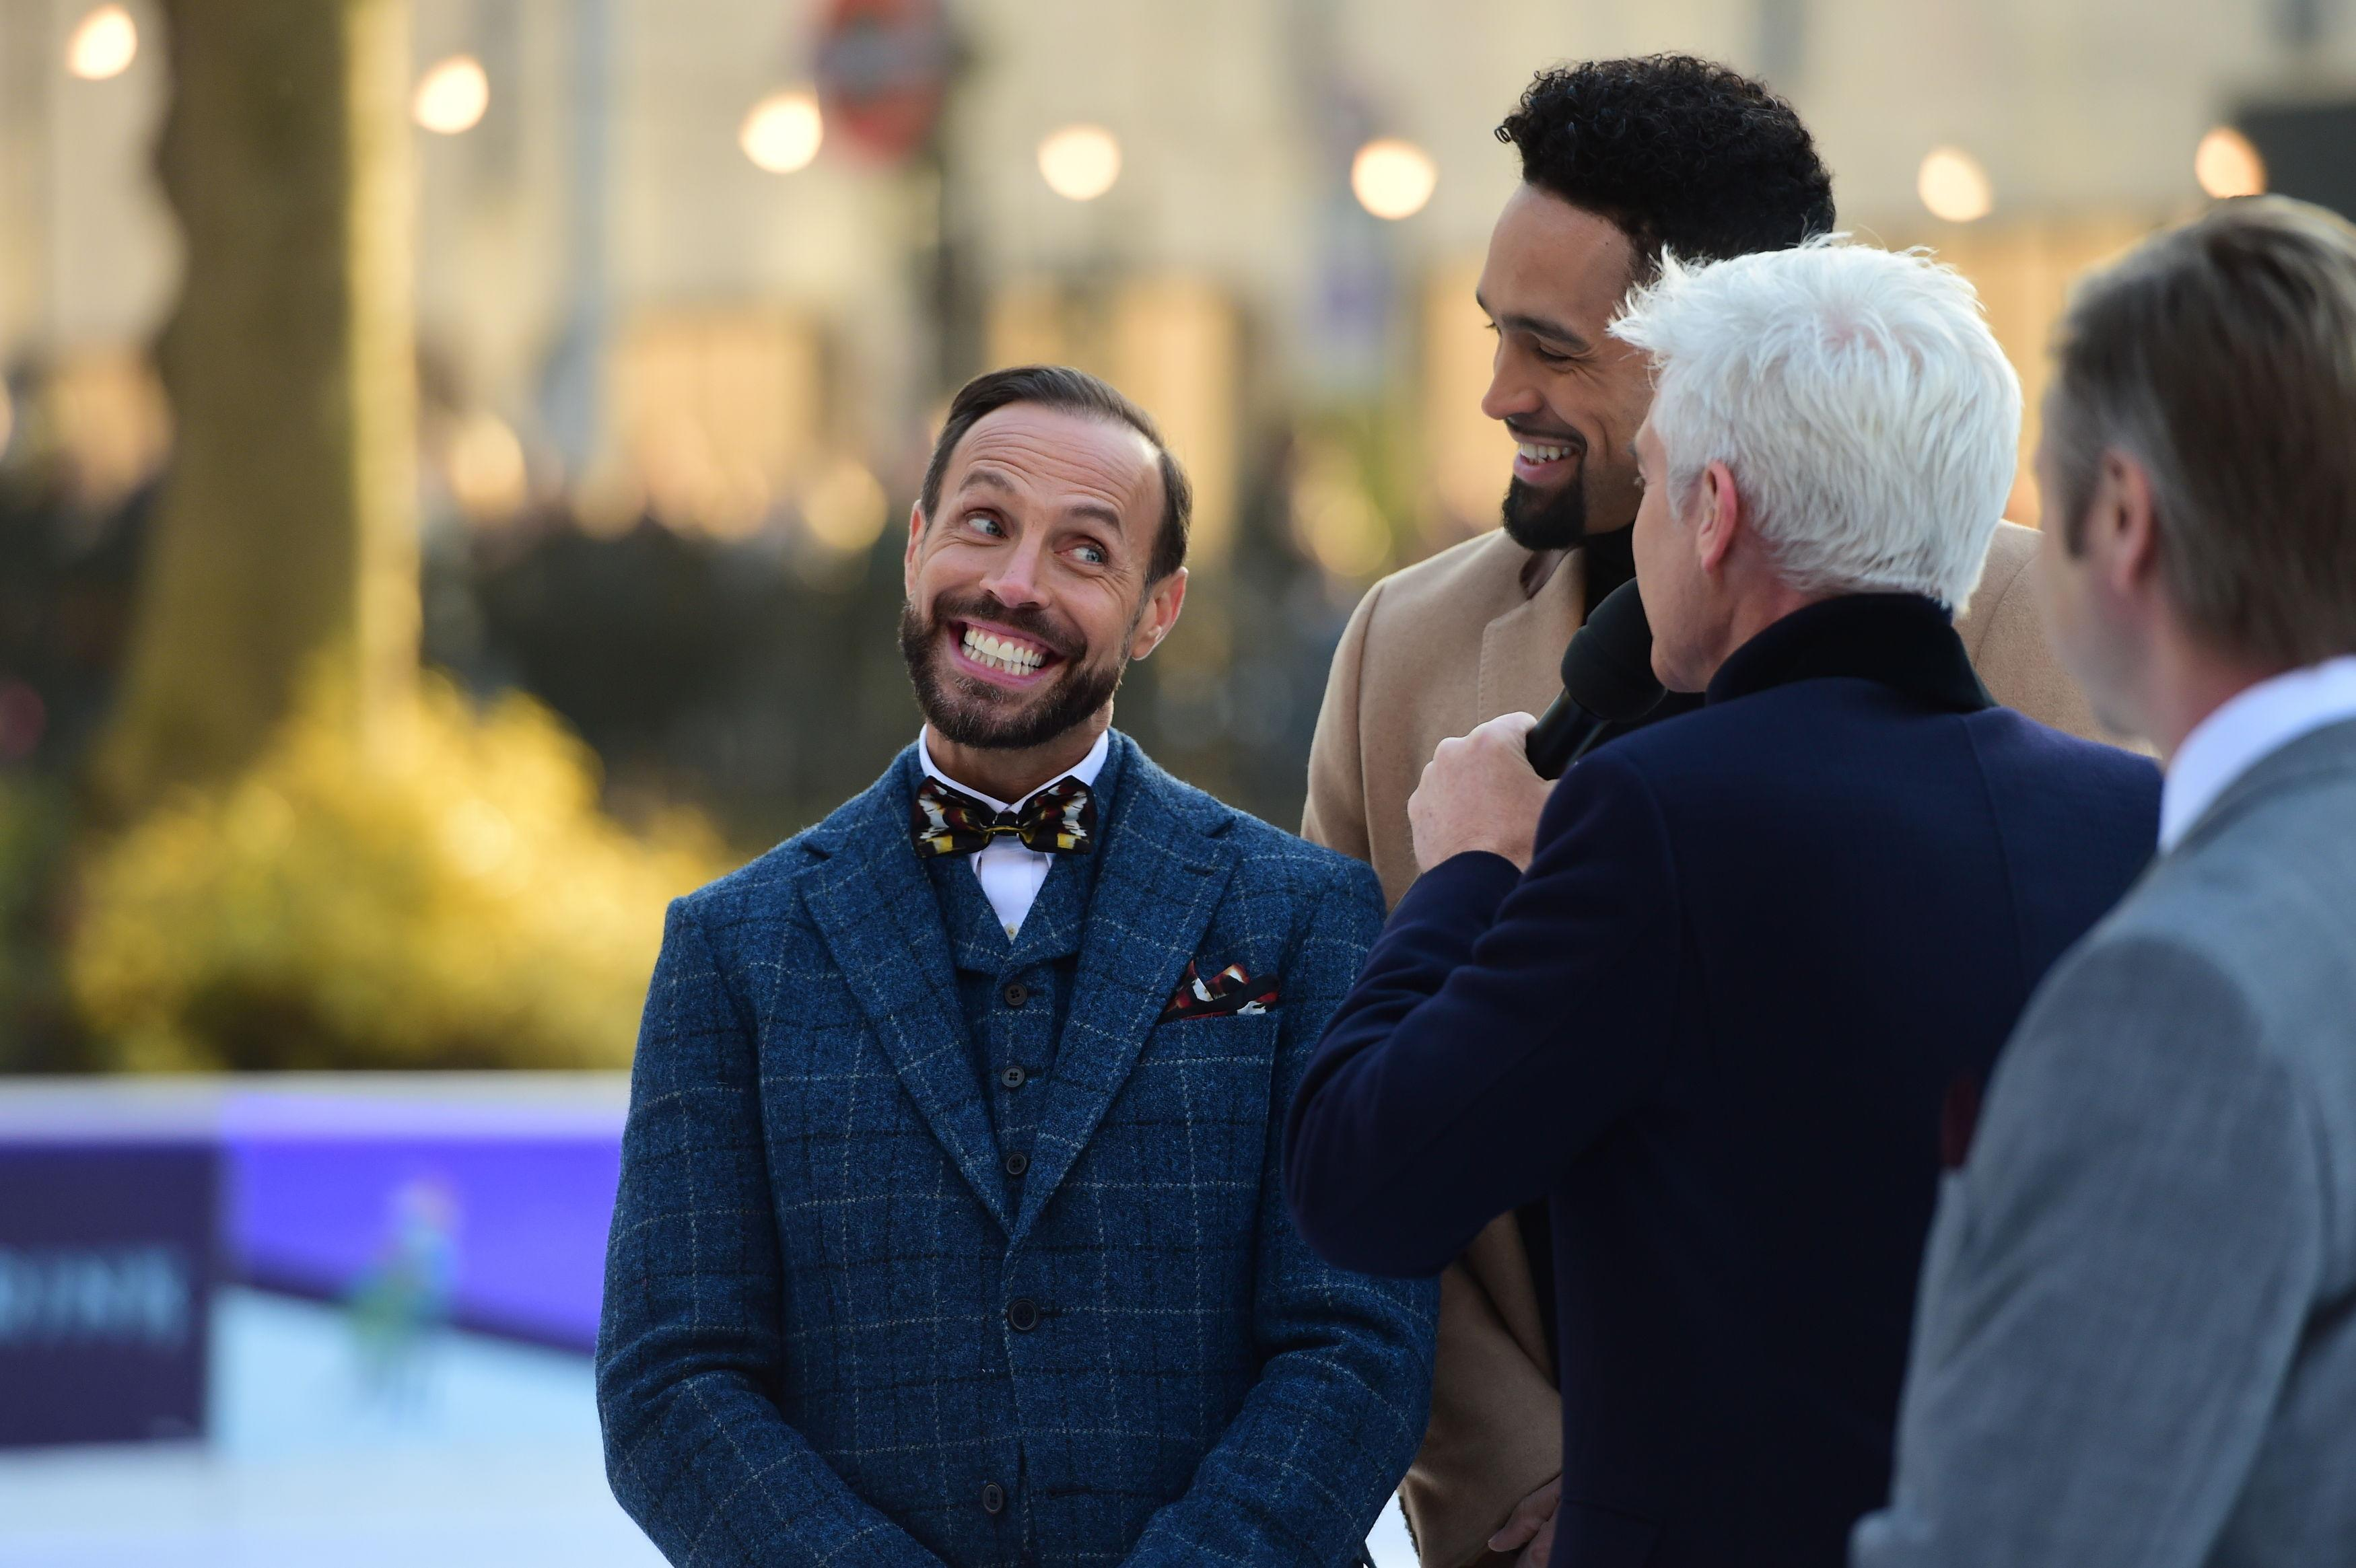 Jason Gardiner hopes 'Dancing on Ice' same-sex pairings aren't made to be 'camp and flamboyant'